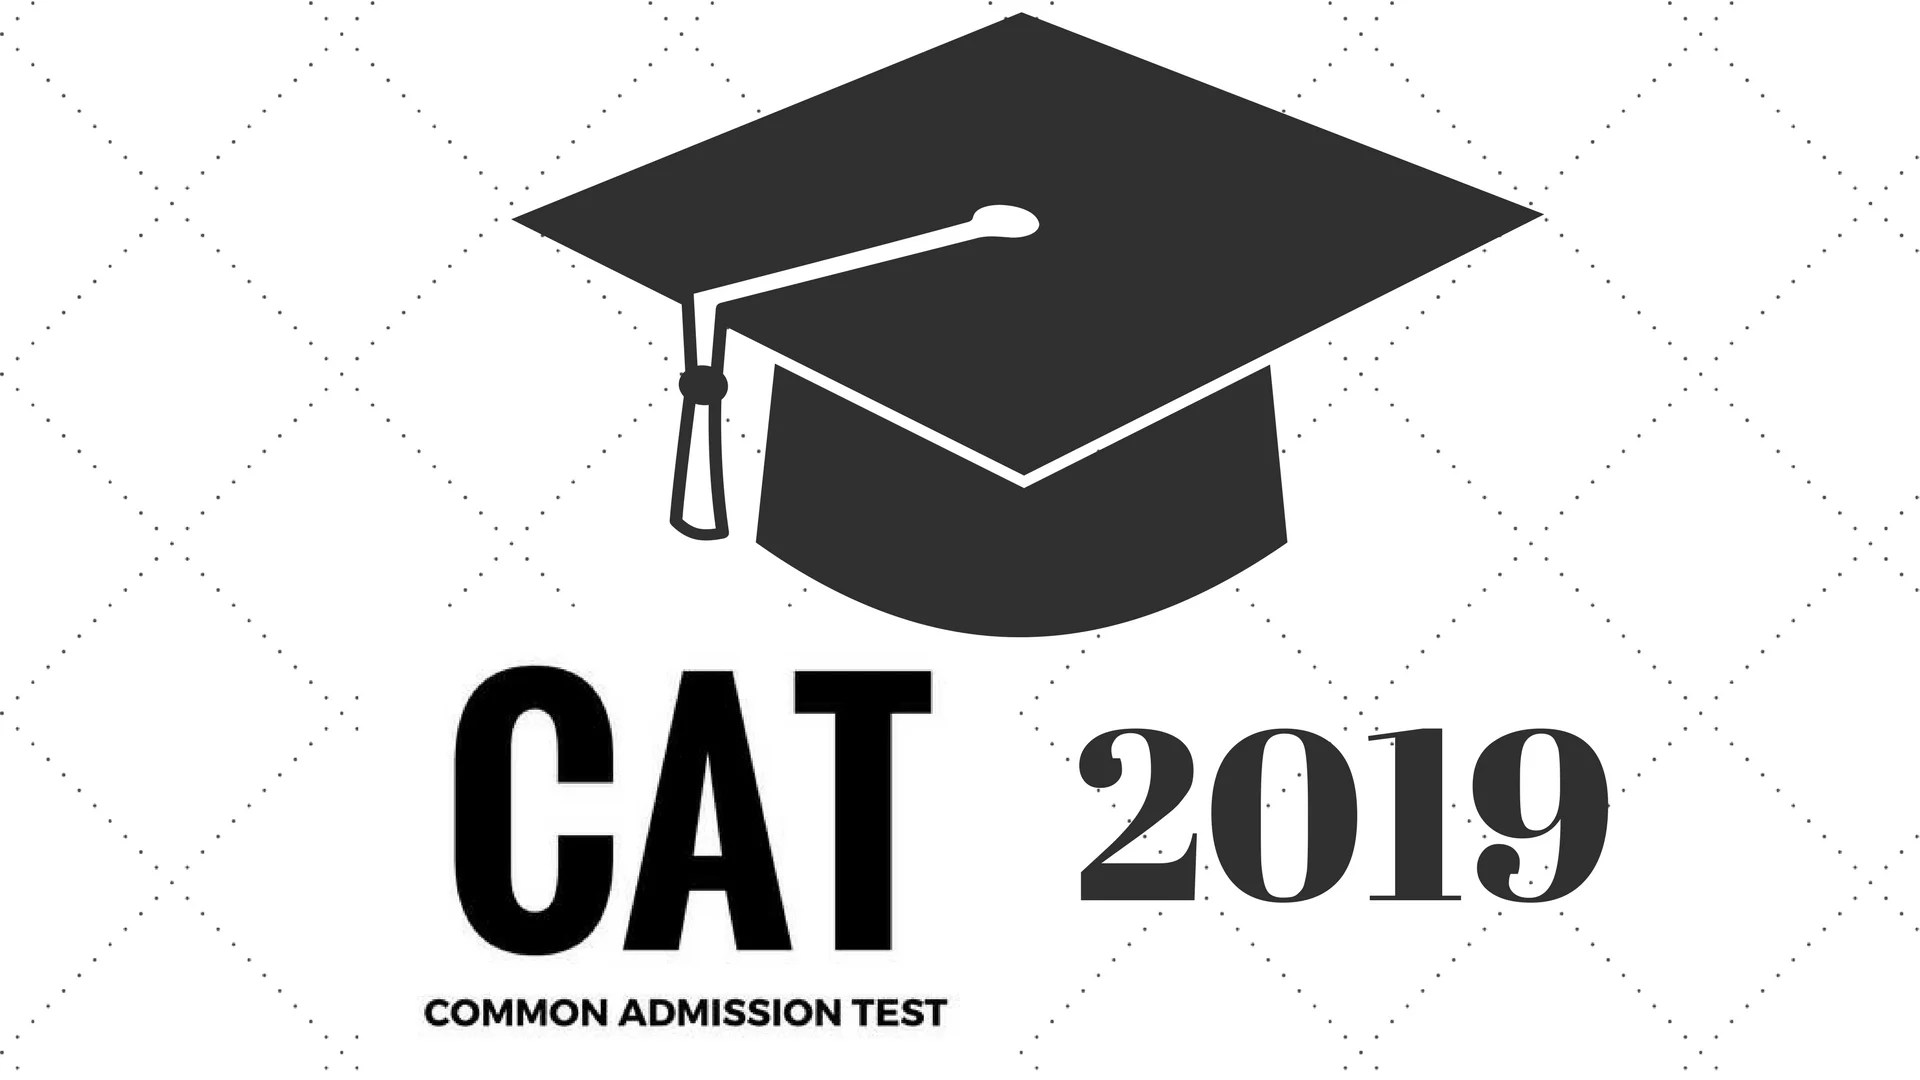 CAT 2019 Exam: Registration Fees, Eligibility, Dates